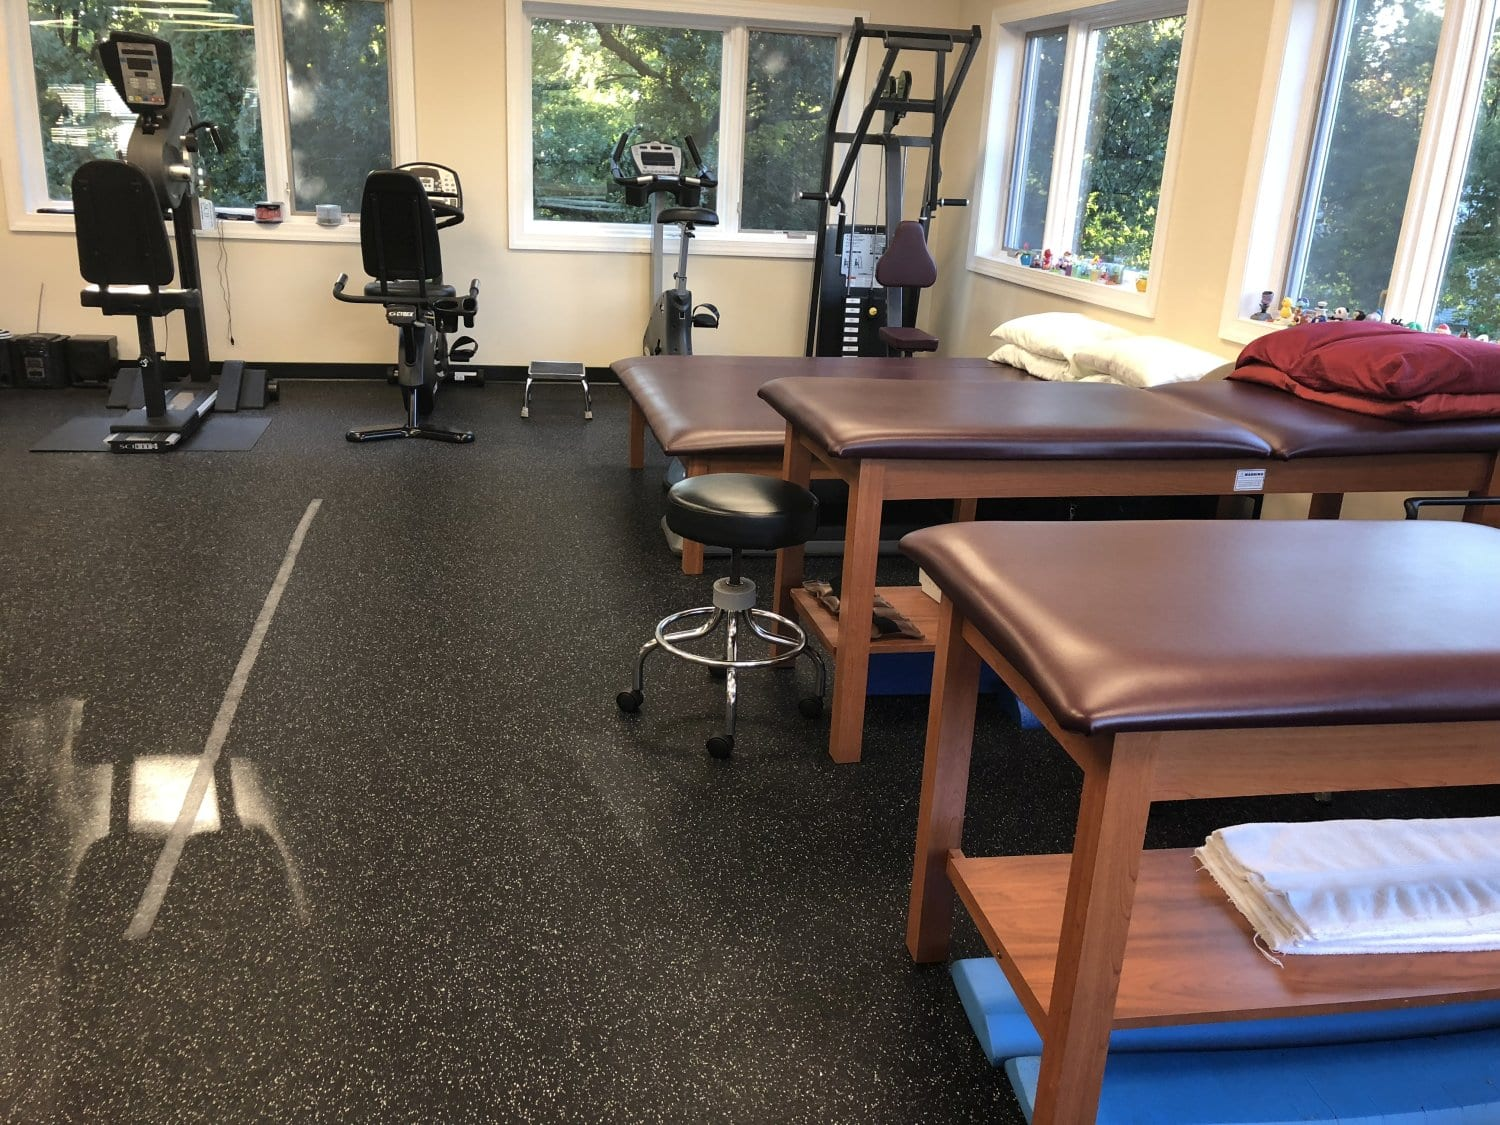 An image of three beds and physical therapy equipment at our clinic in Hazlet, New Jersey.